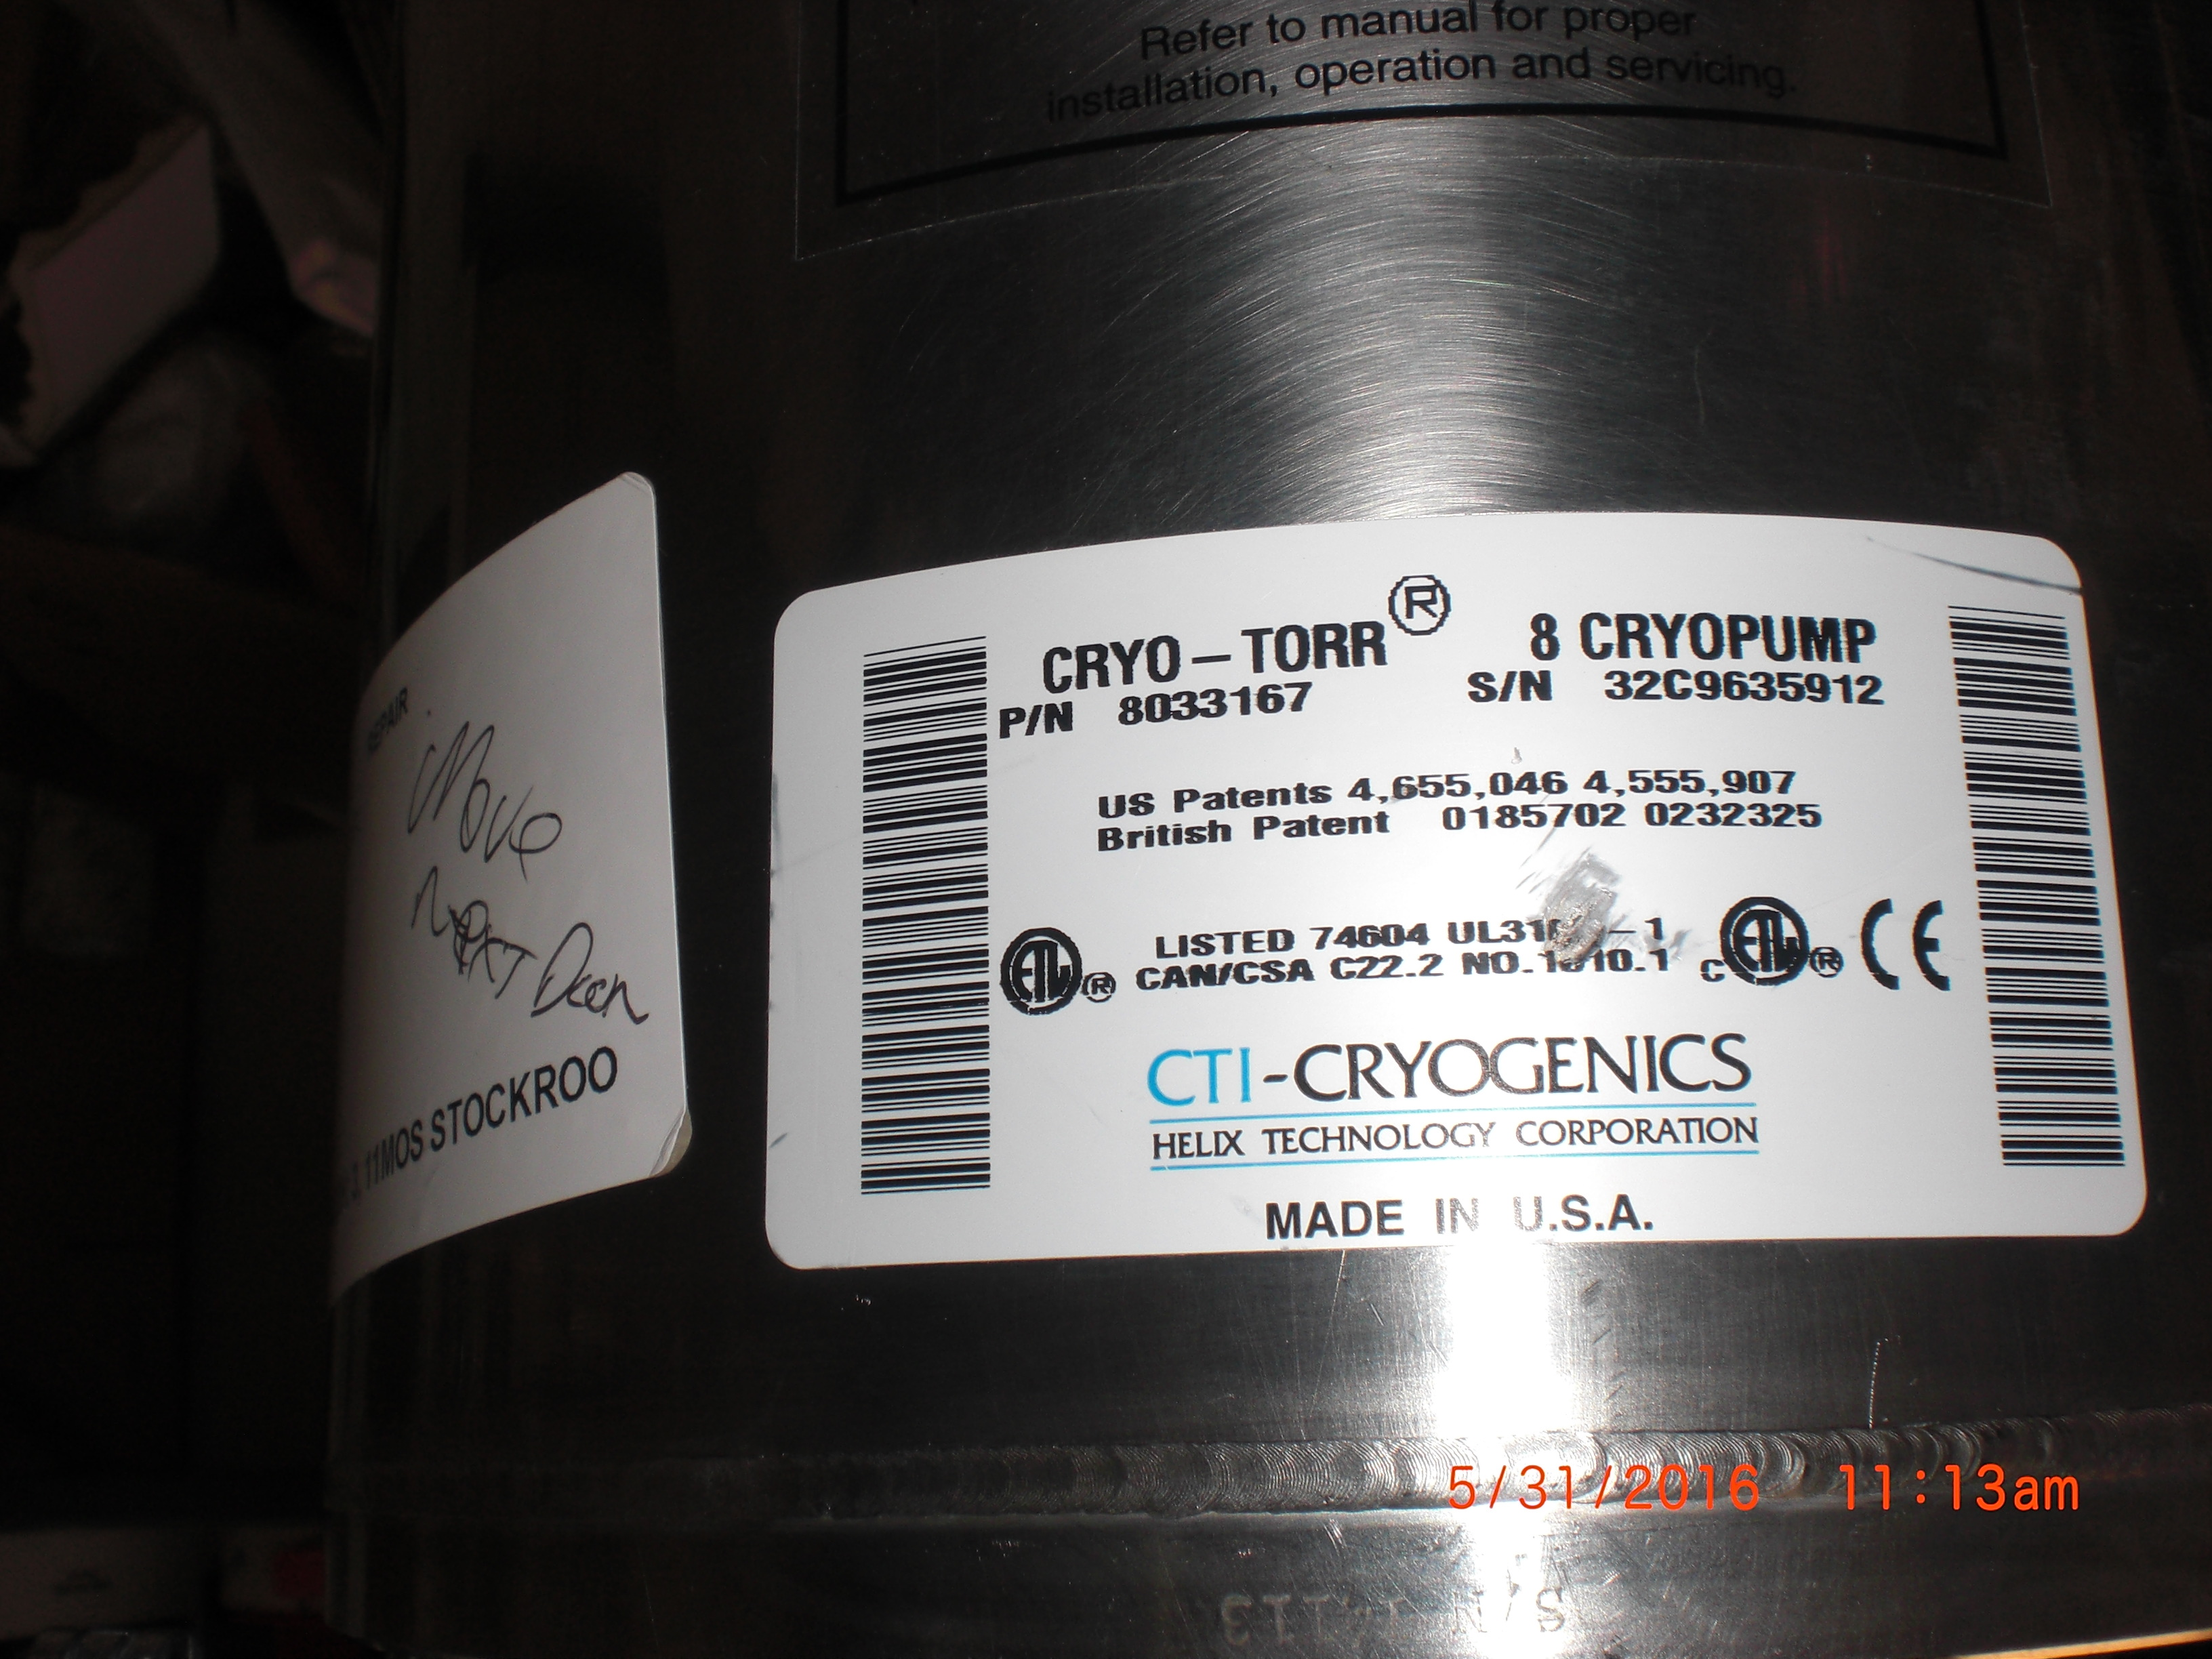 Pump CTI-CRYOGENICS 8033167 Cryo-Torr 8 Cryogenics Manufacturer Refurbished